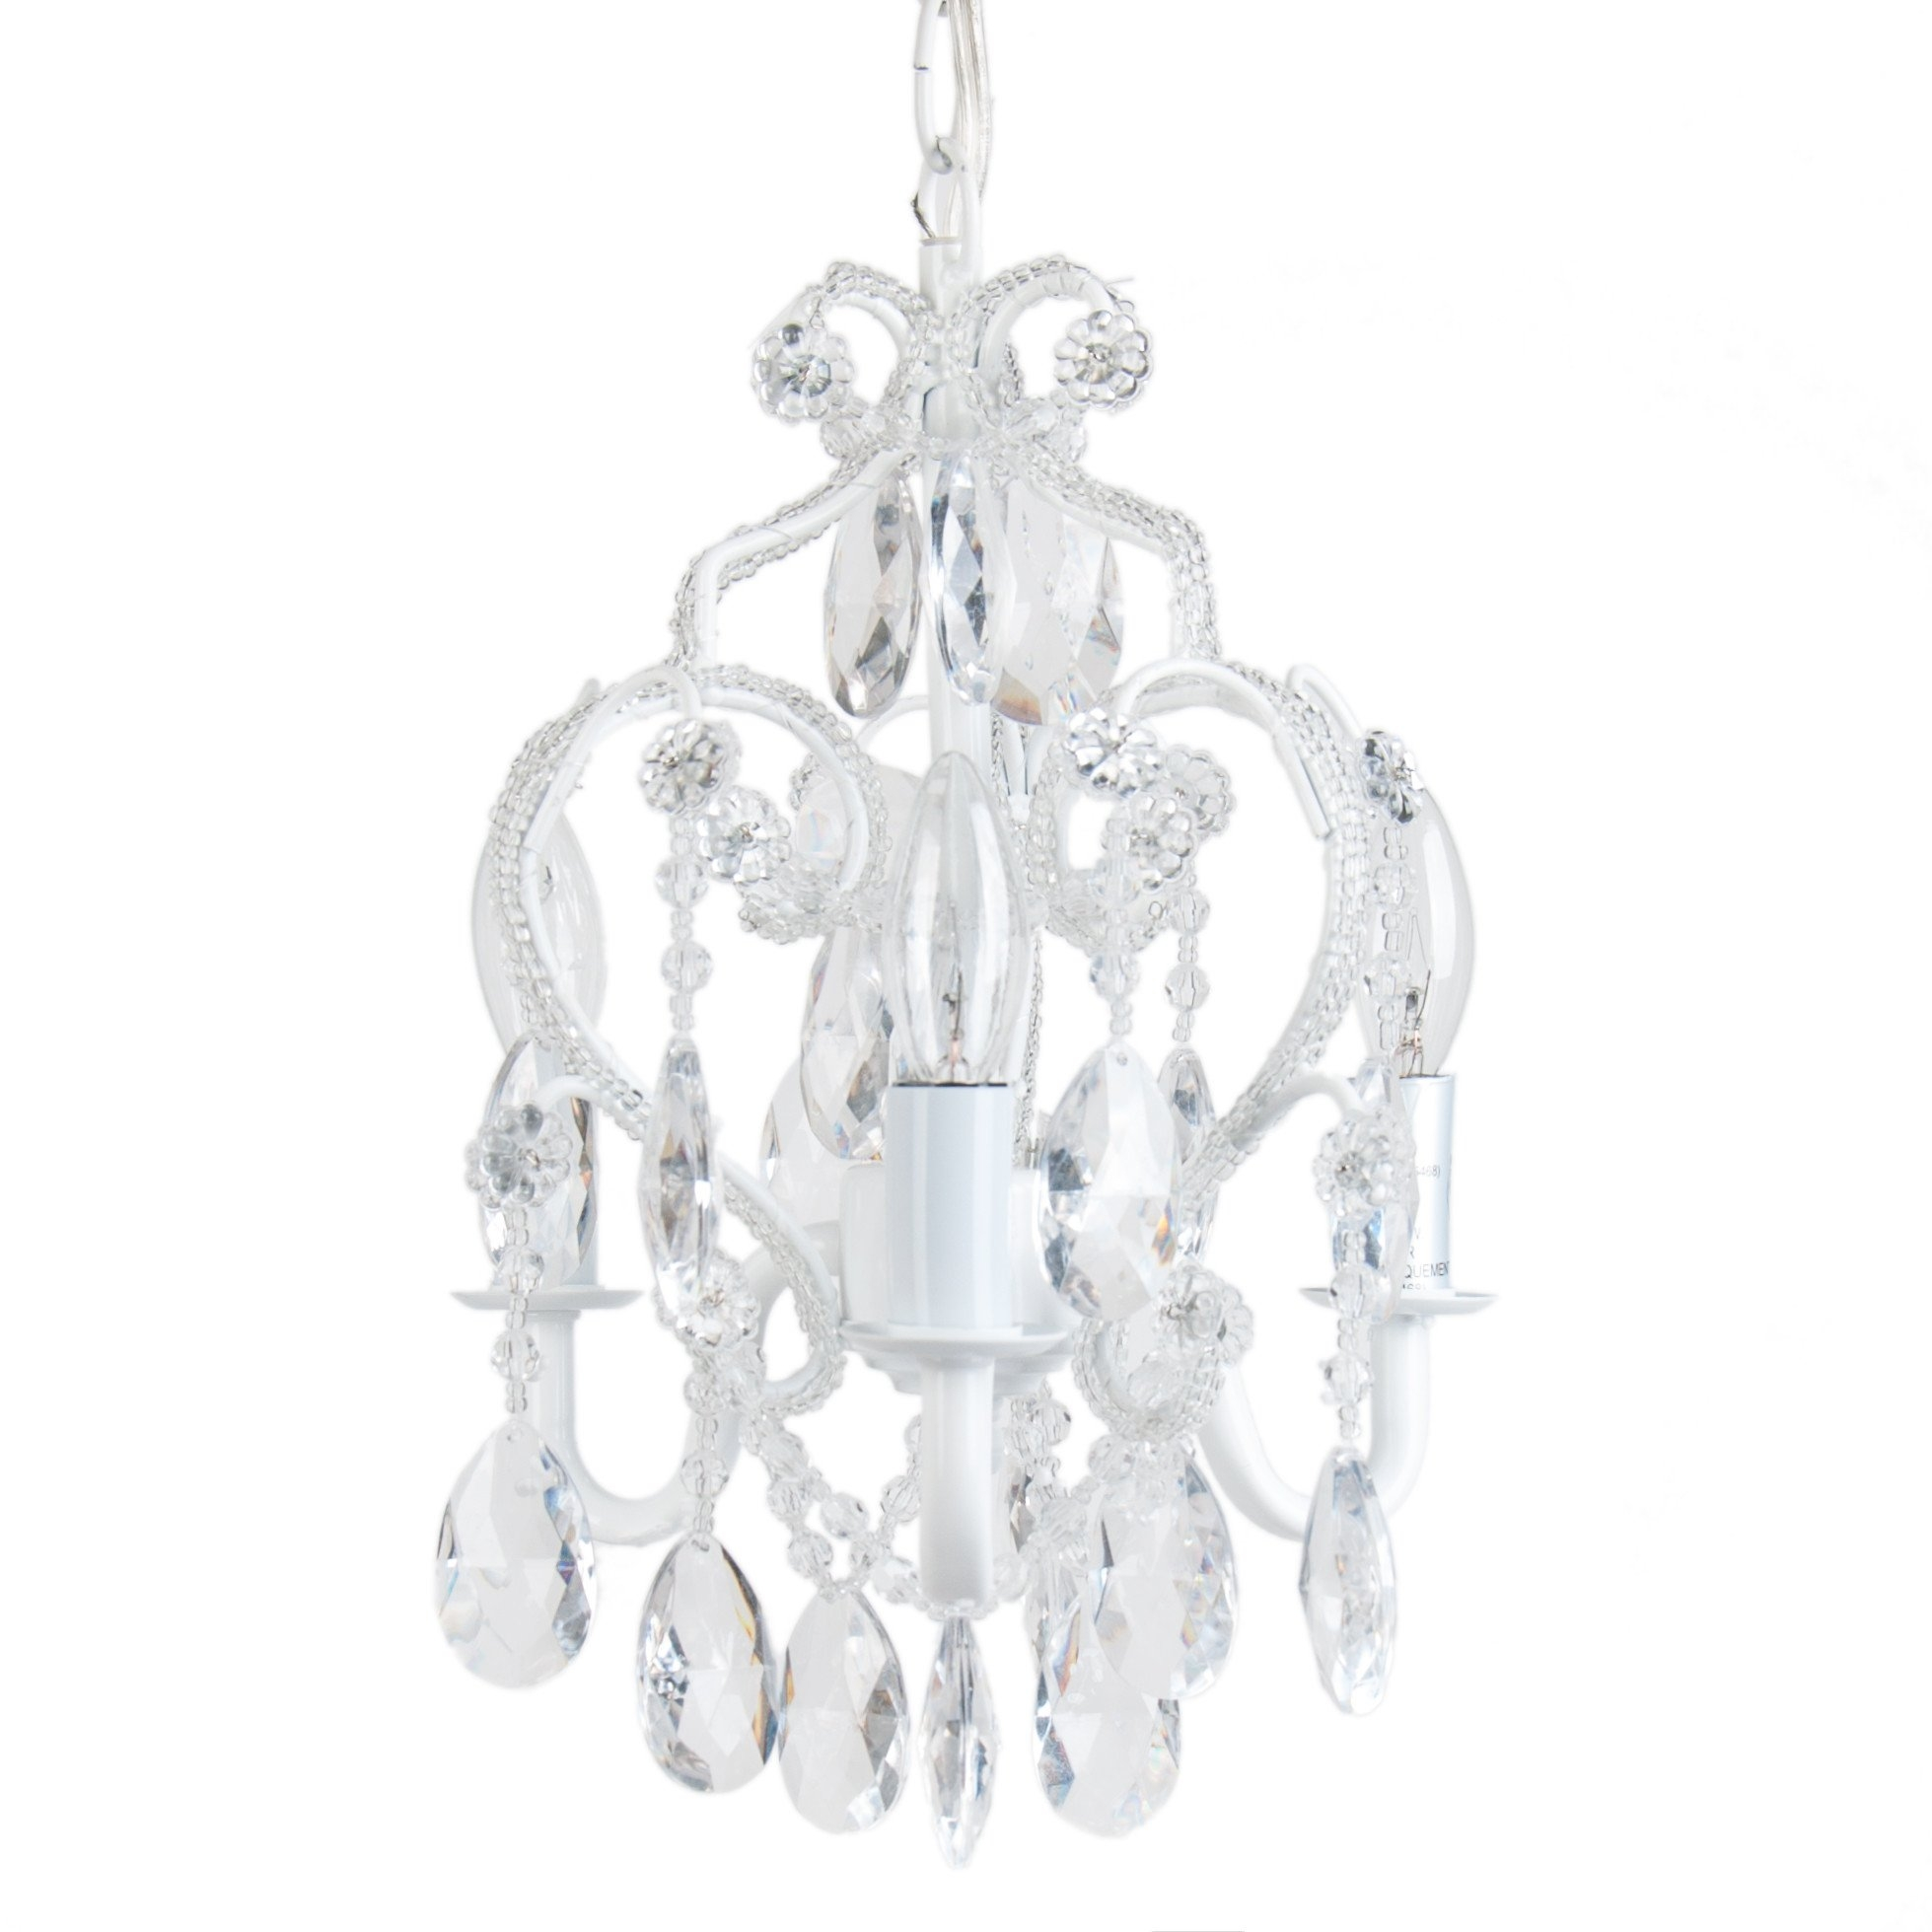 Viv Rae Caden 3 Light Crystal Chandelier Reviews Wayfair Within 3 Tier Crystal Chandelier (#12 of 12)